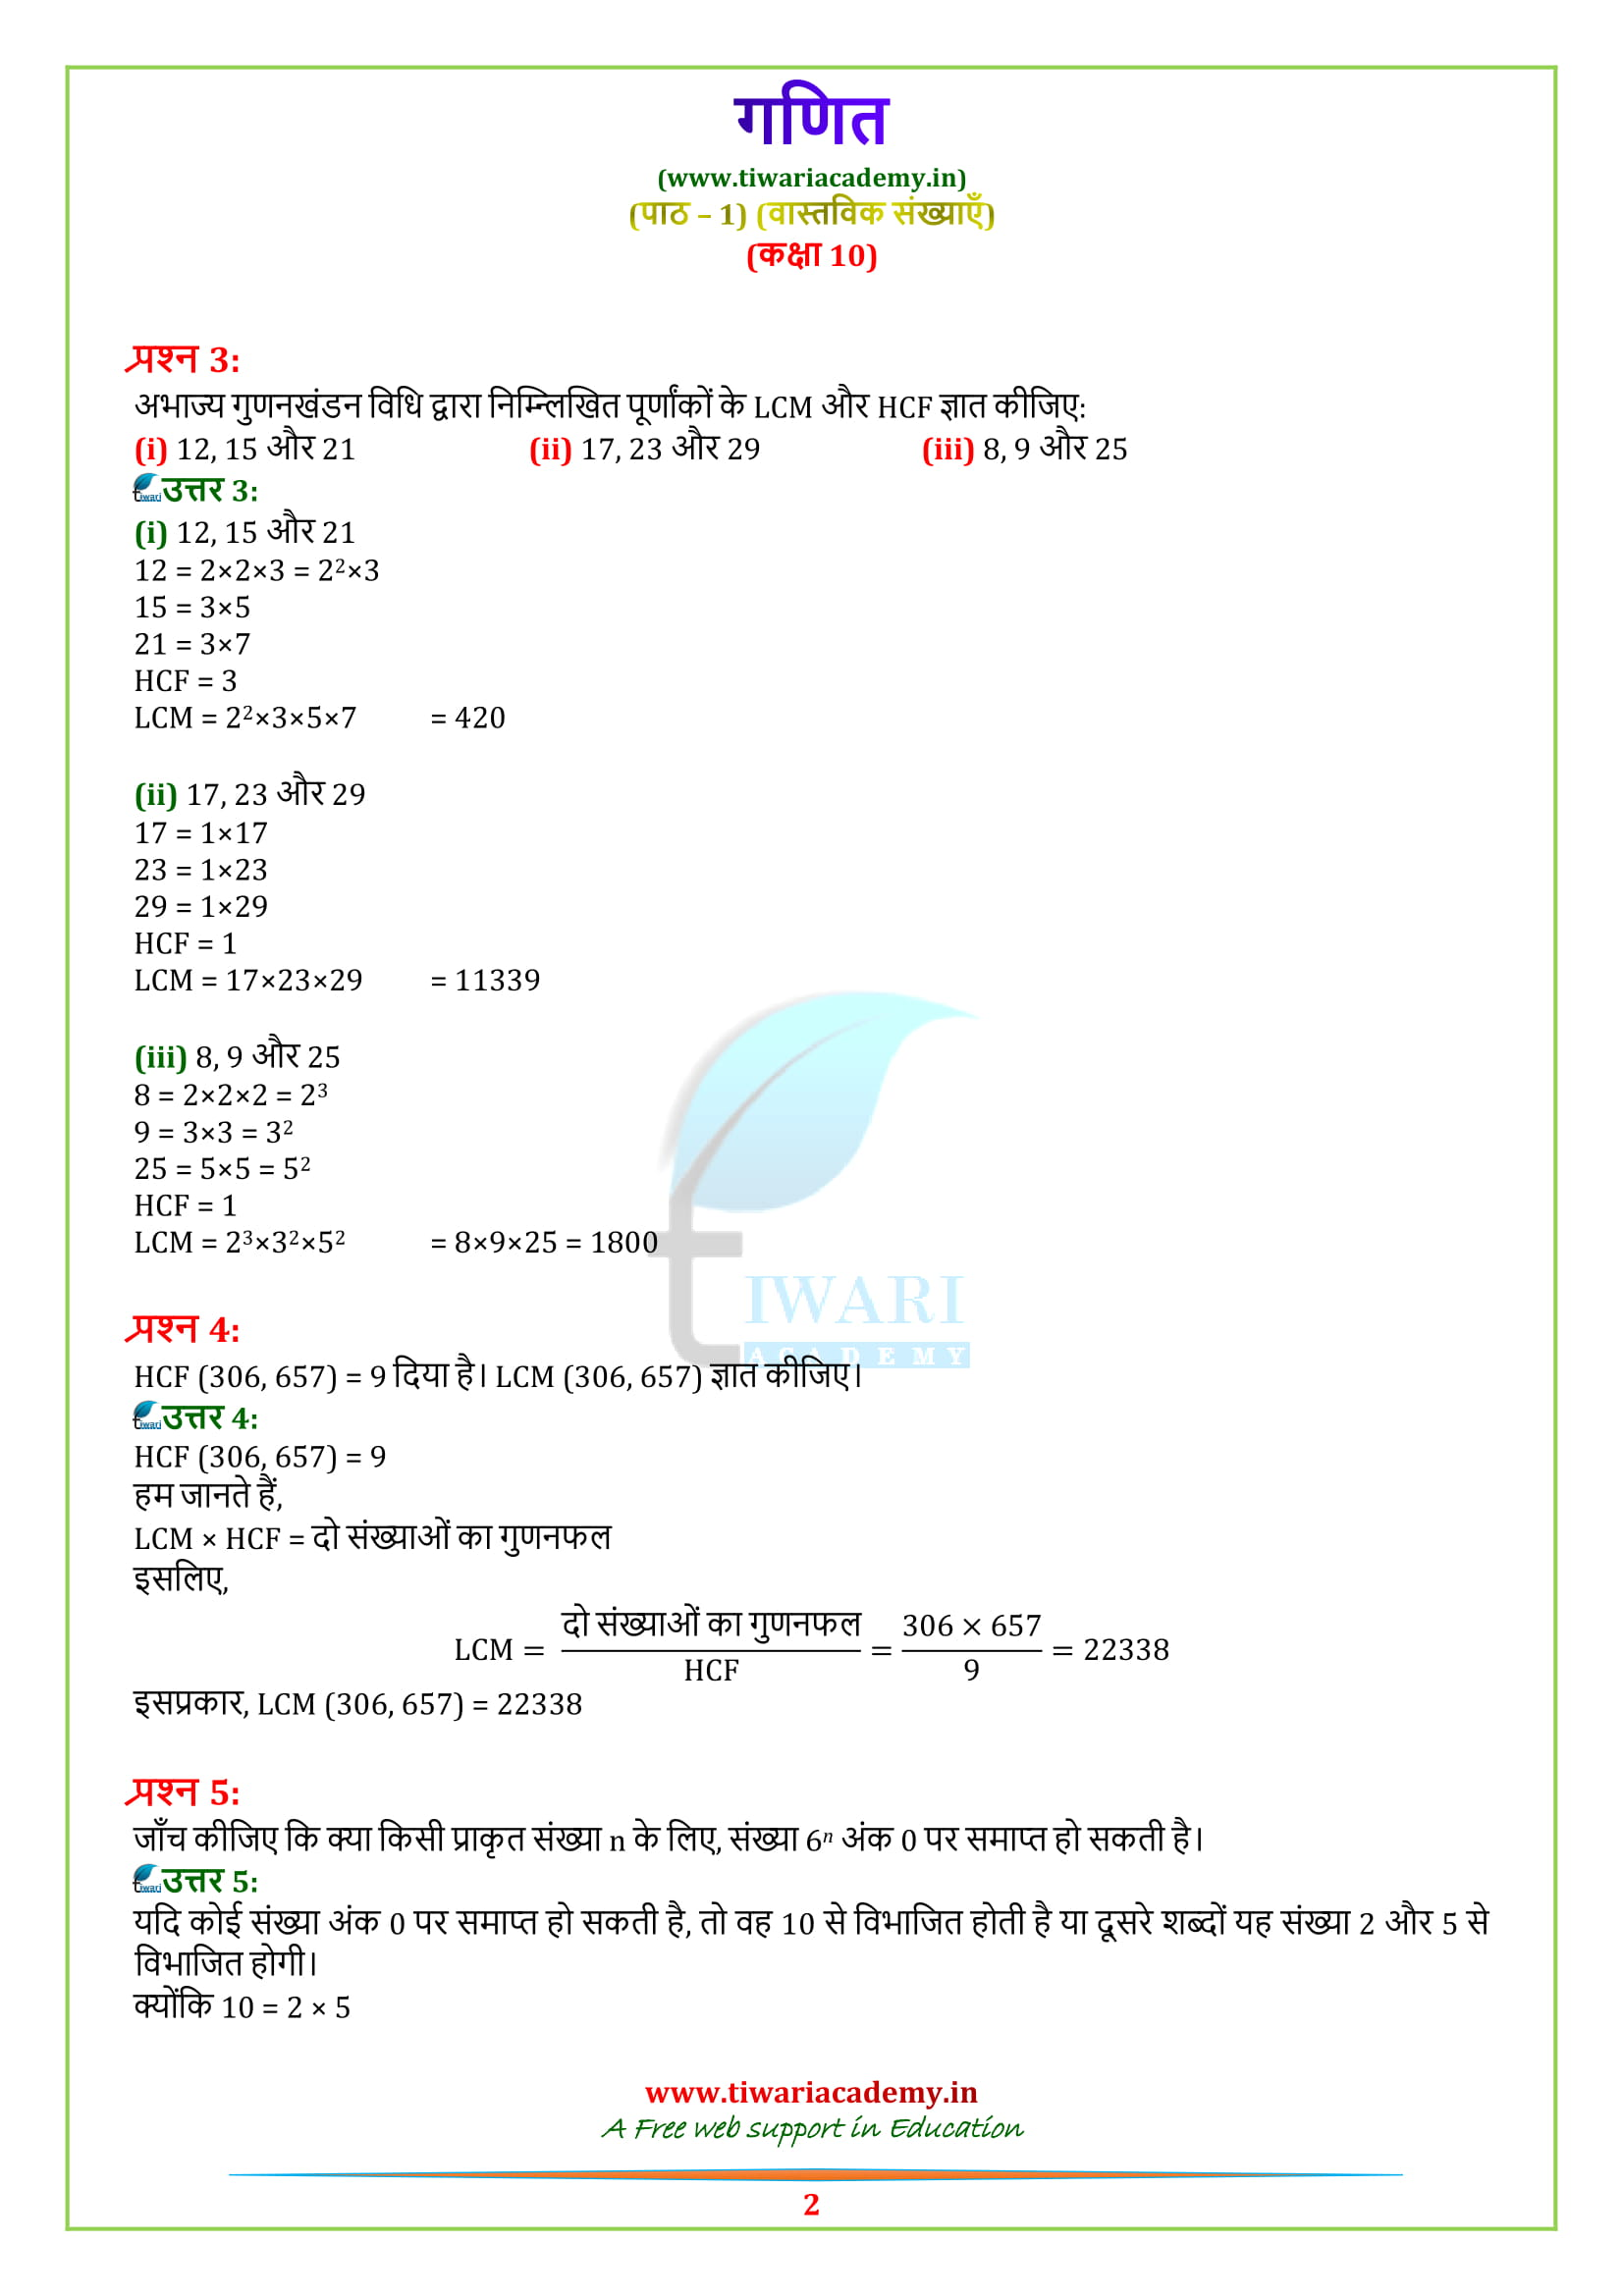 Class 10 Maths Chapter 1 Exercise 1.2 in Hindi question 1, 2, 3